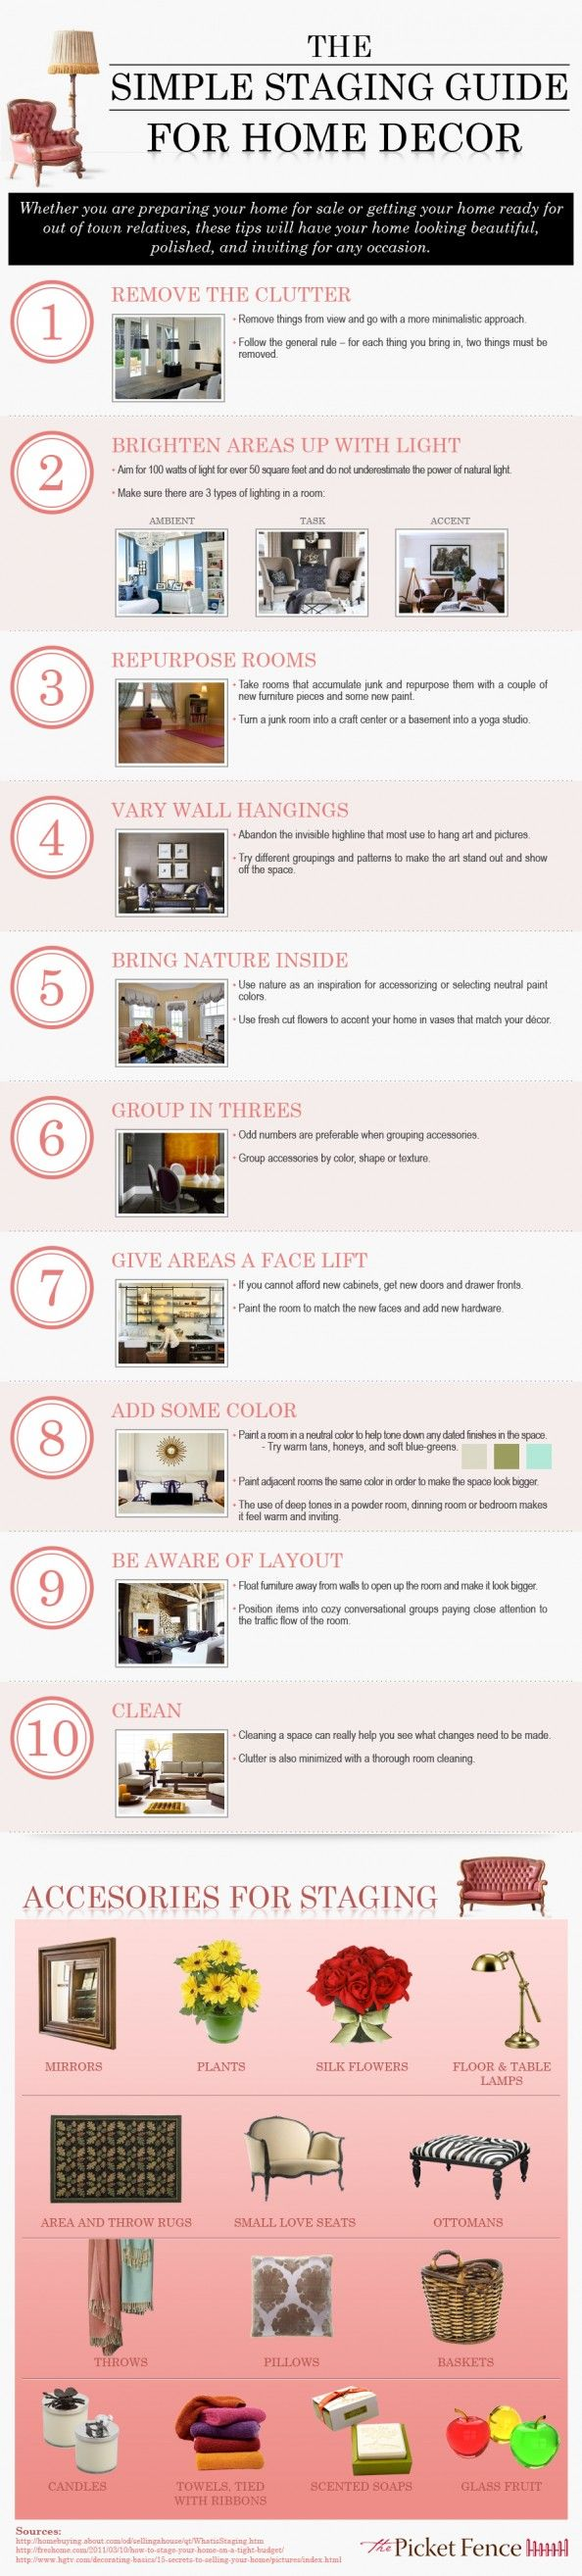 This is a great visual guide for staging your home!